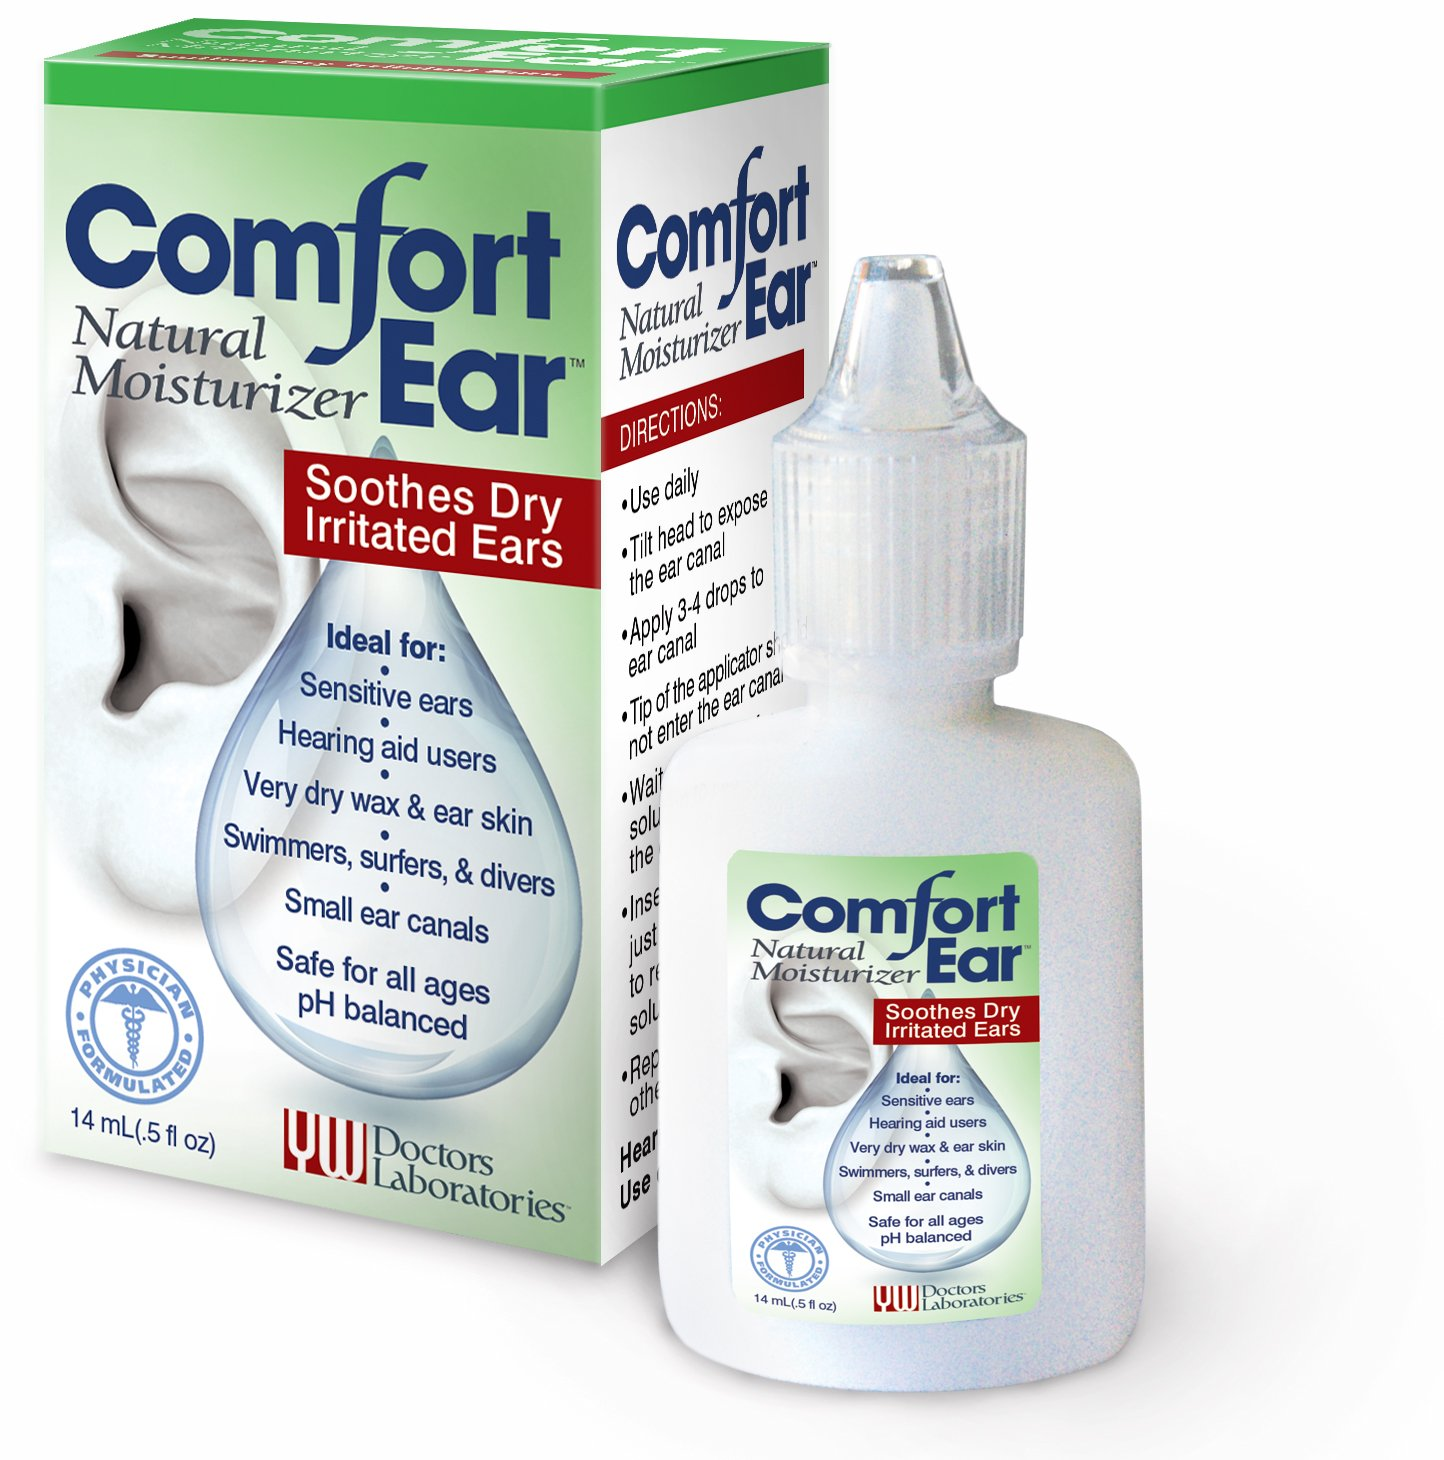 Comfort Ear Natural Moisturizer